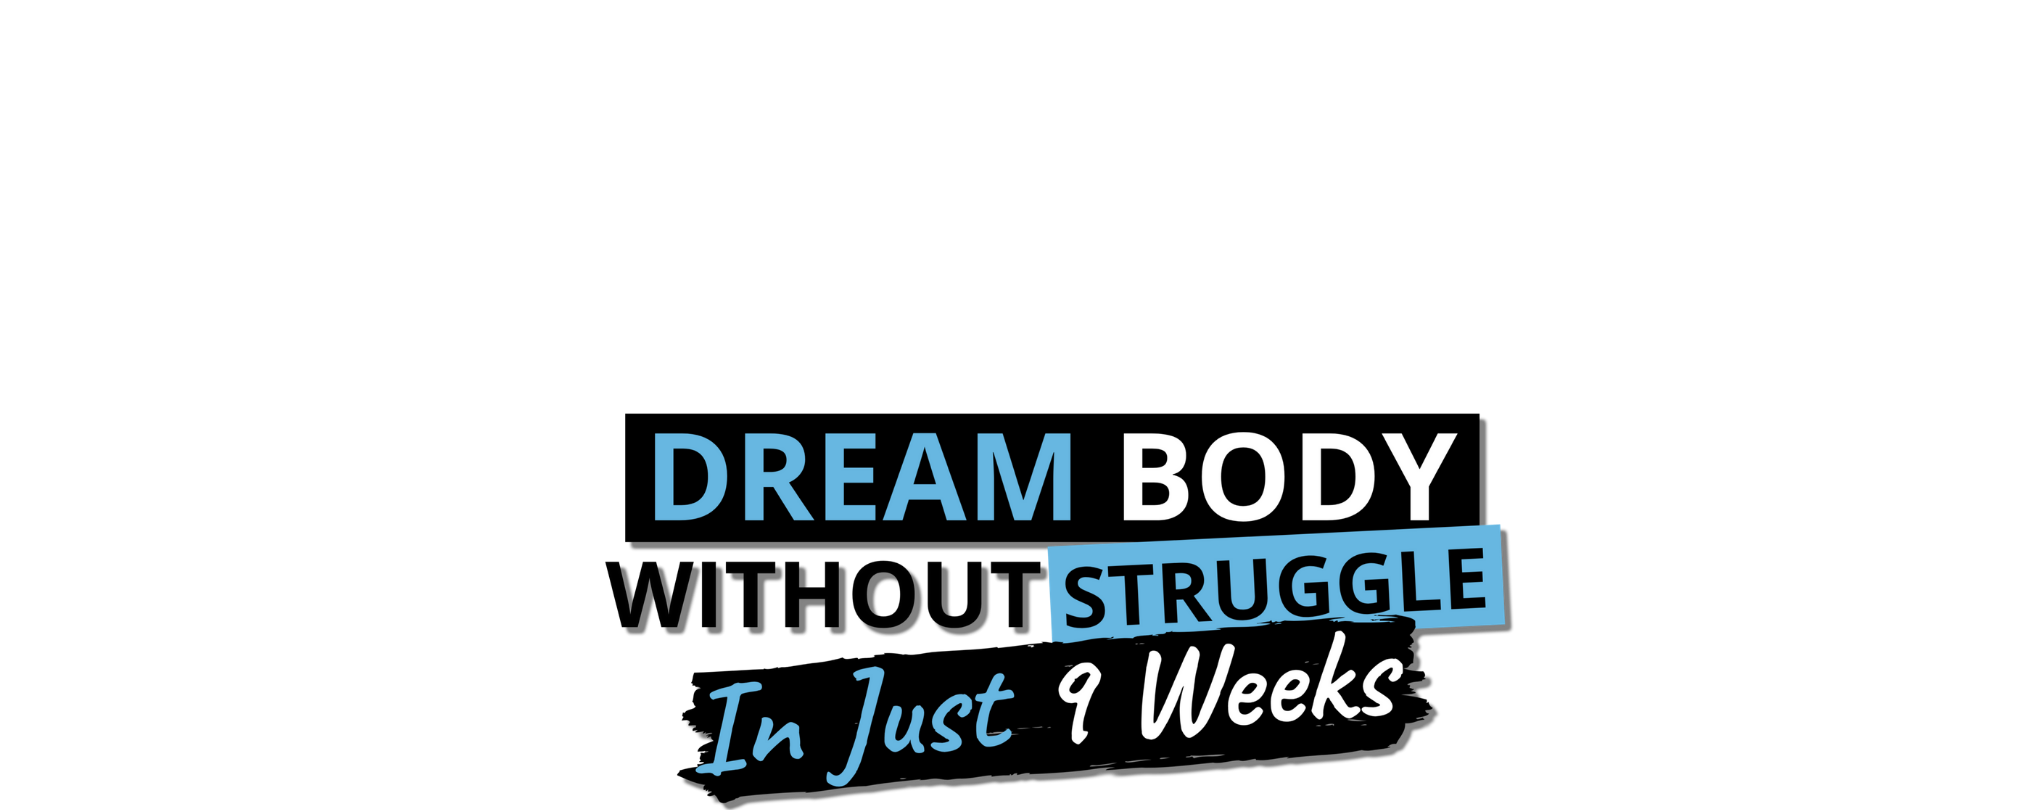 get firt in 9 weeks and lose your weight get your dream body